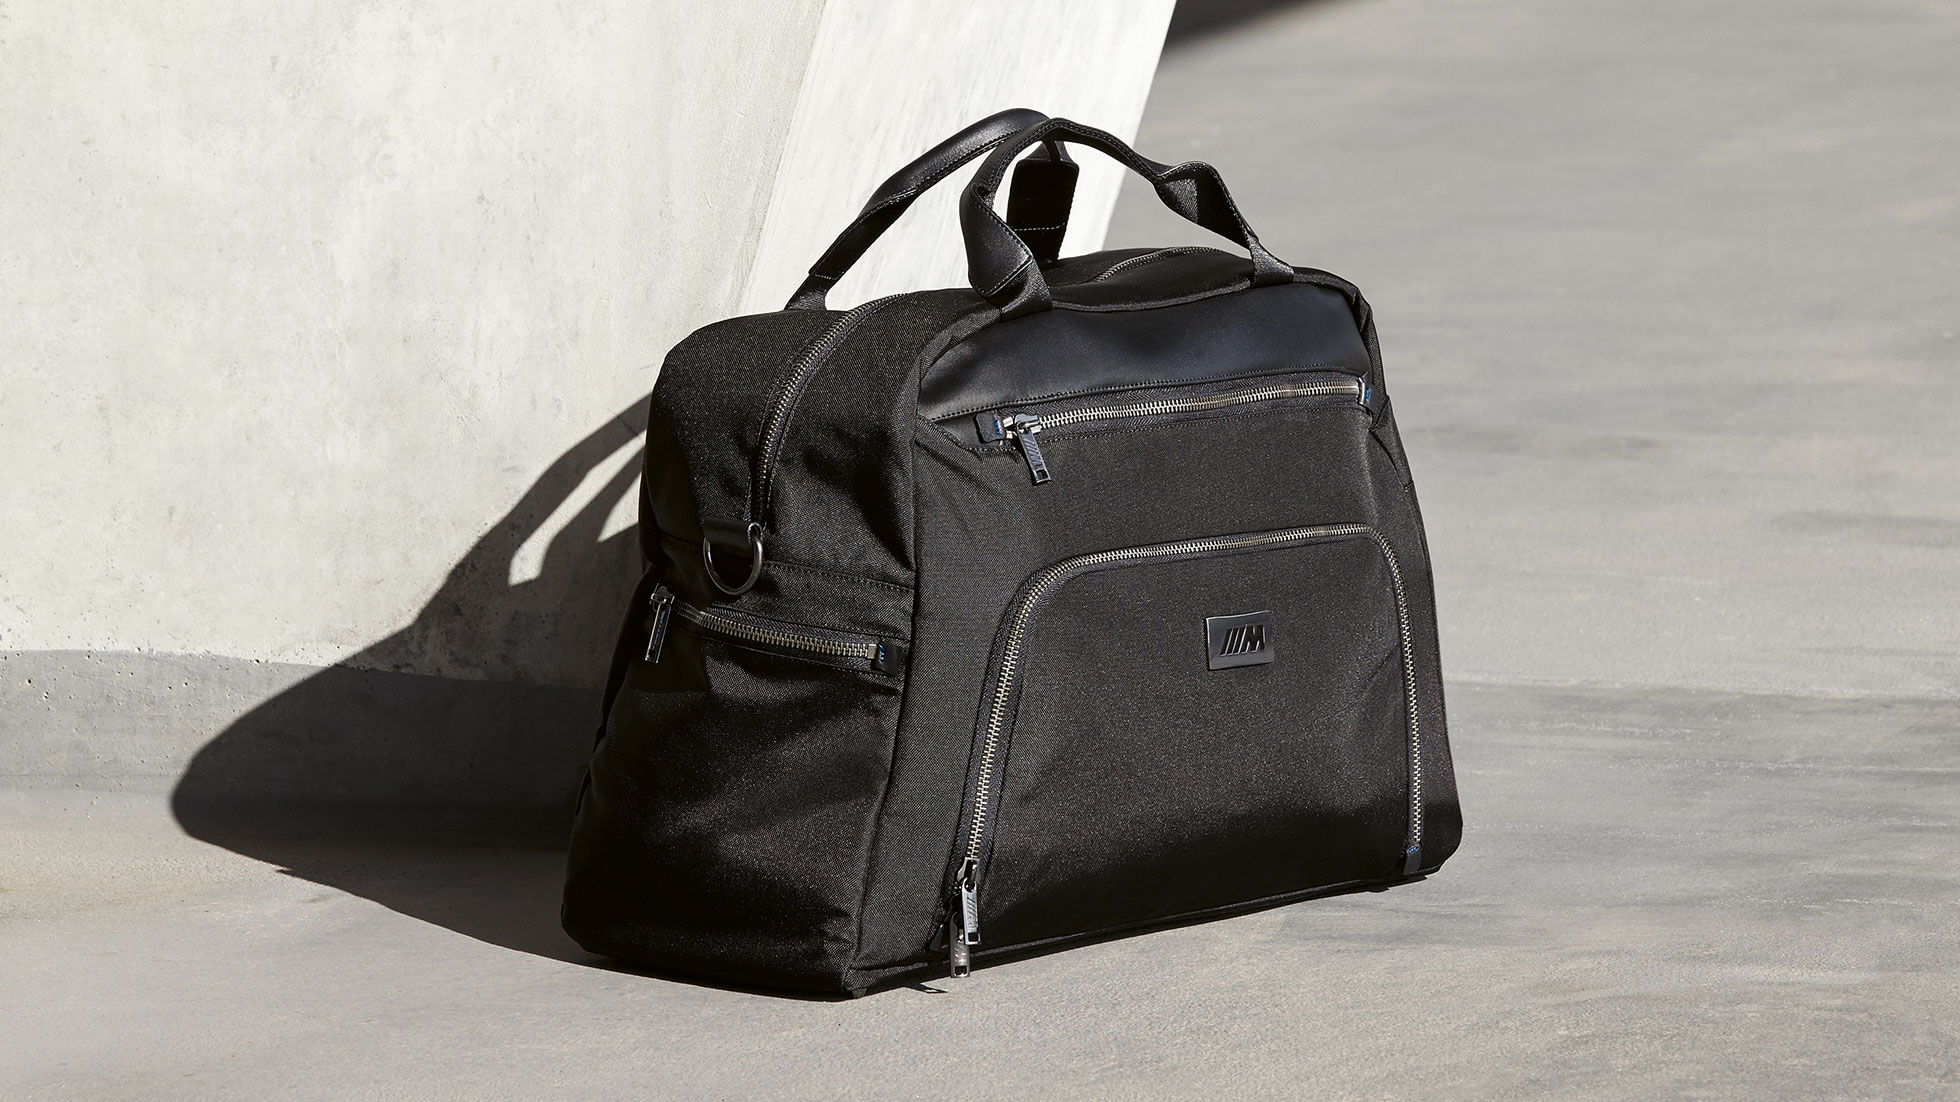 BMW M TRAVEL BAG.